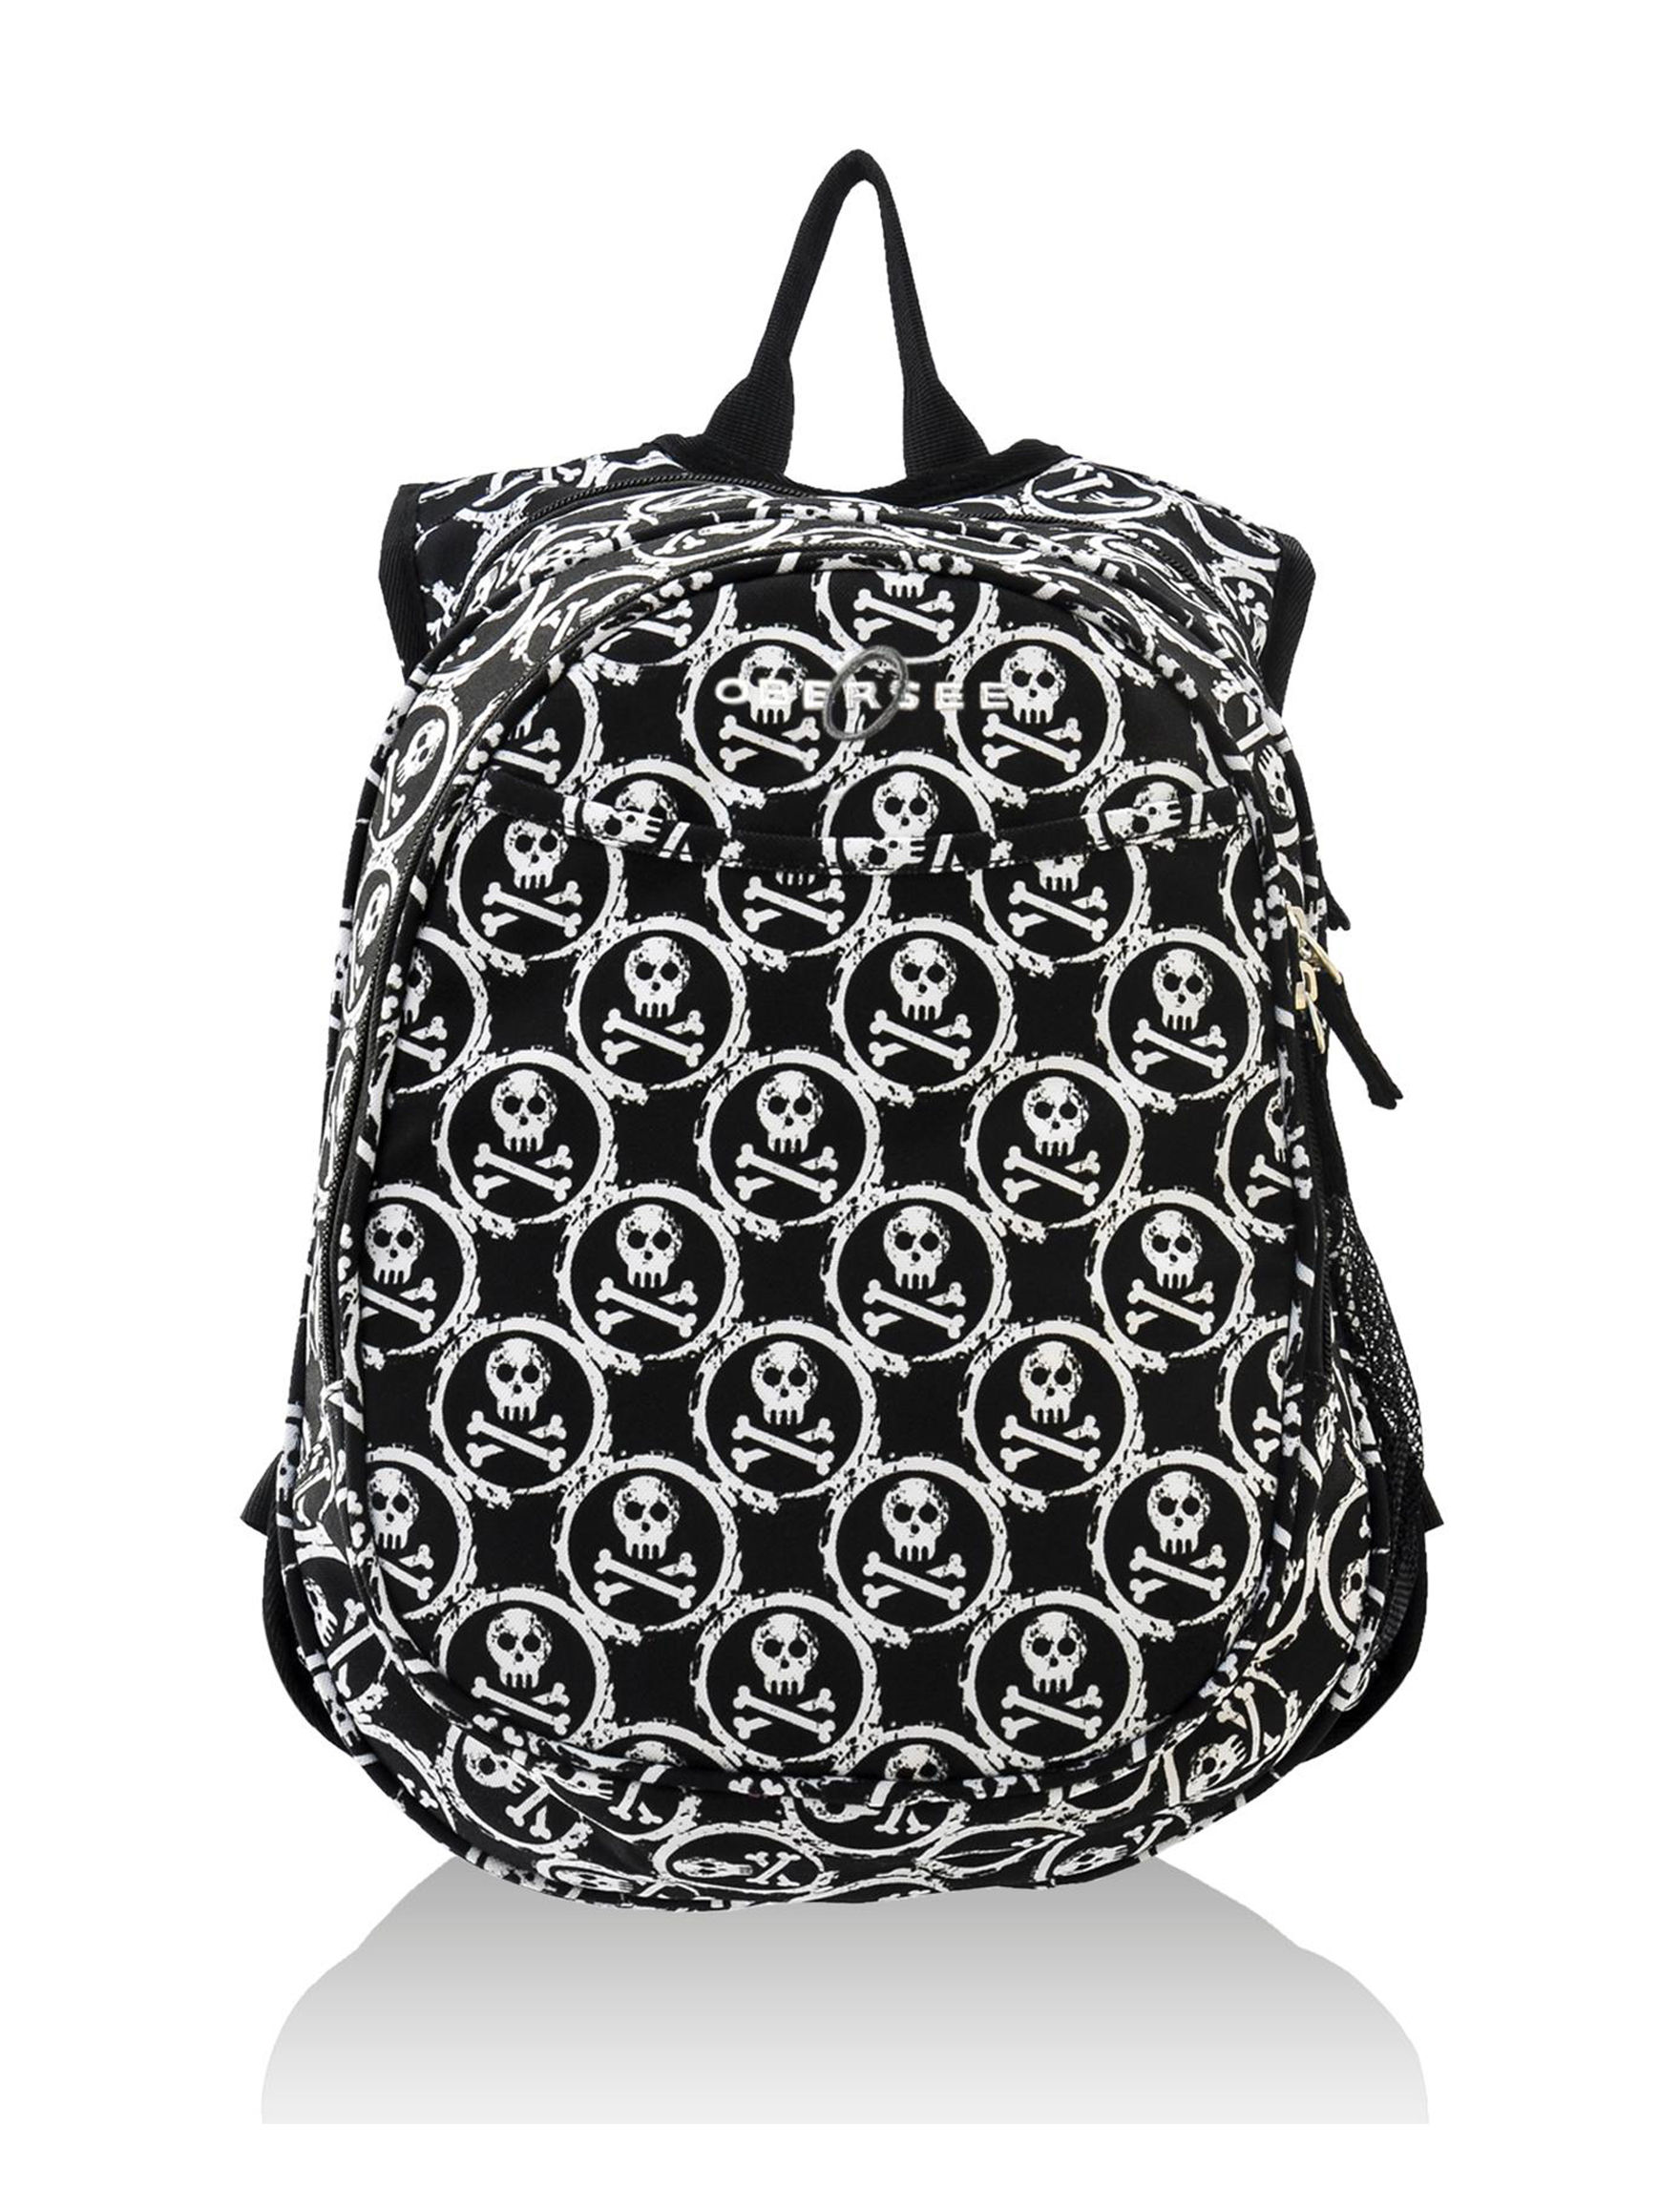 Obersee White / Black Bookbags & Backpacks Diaper Bags